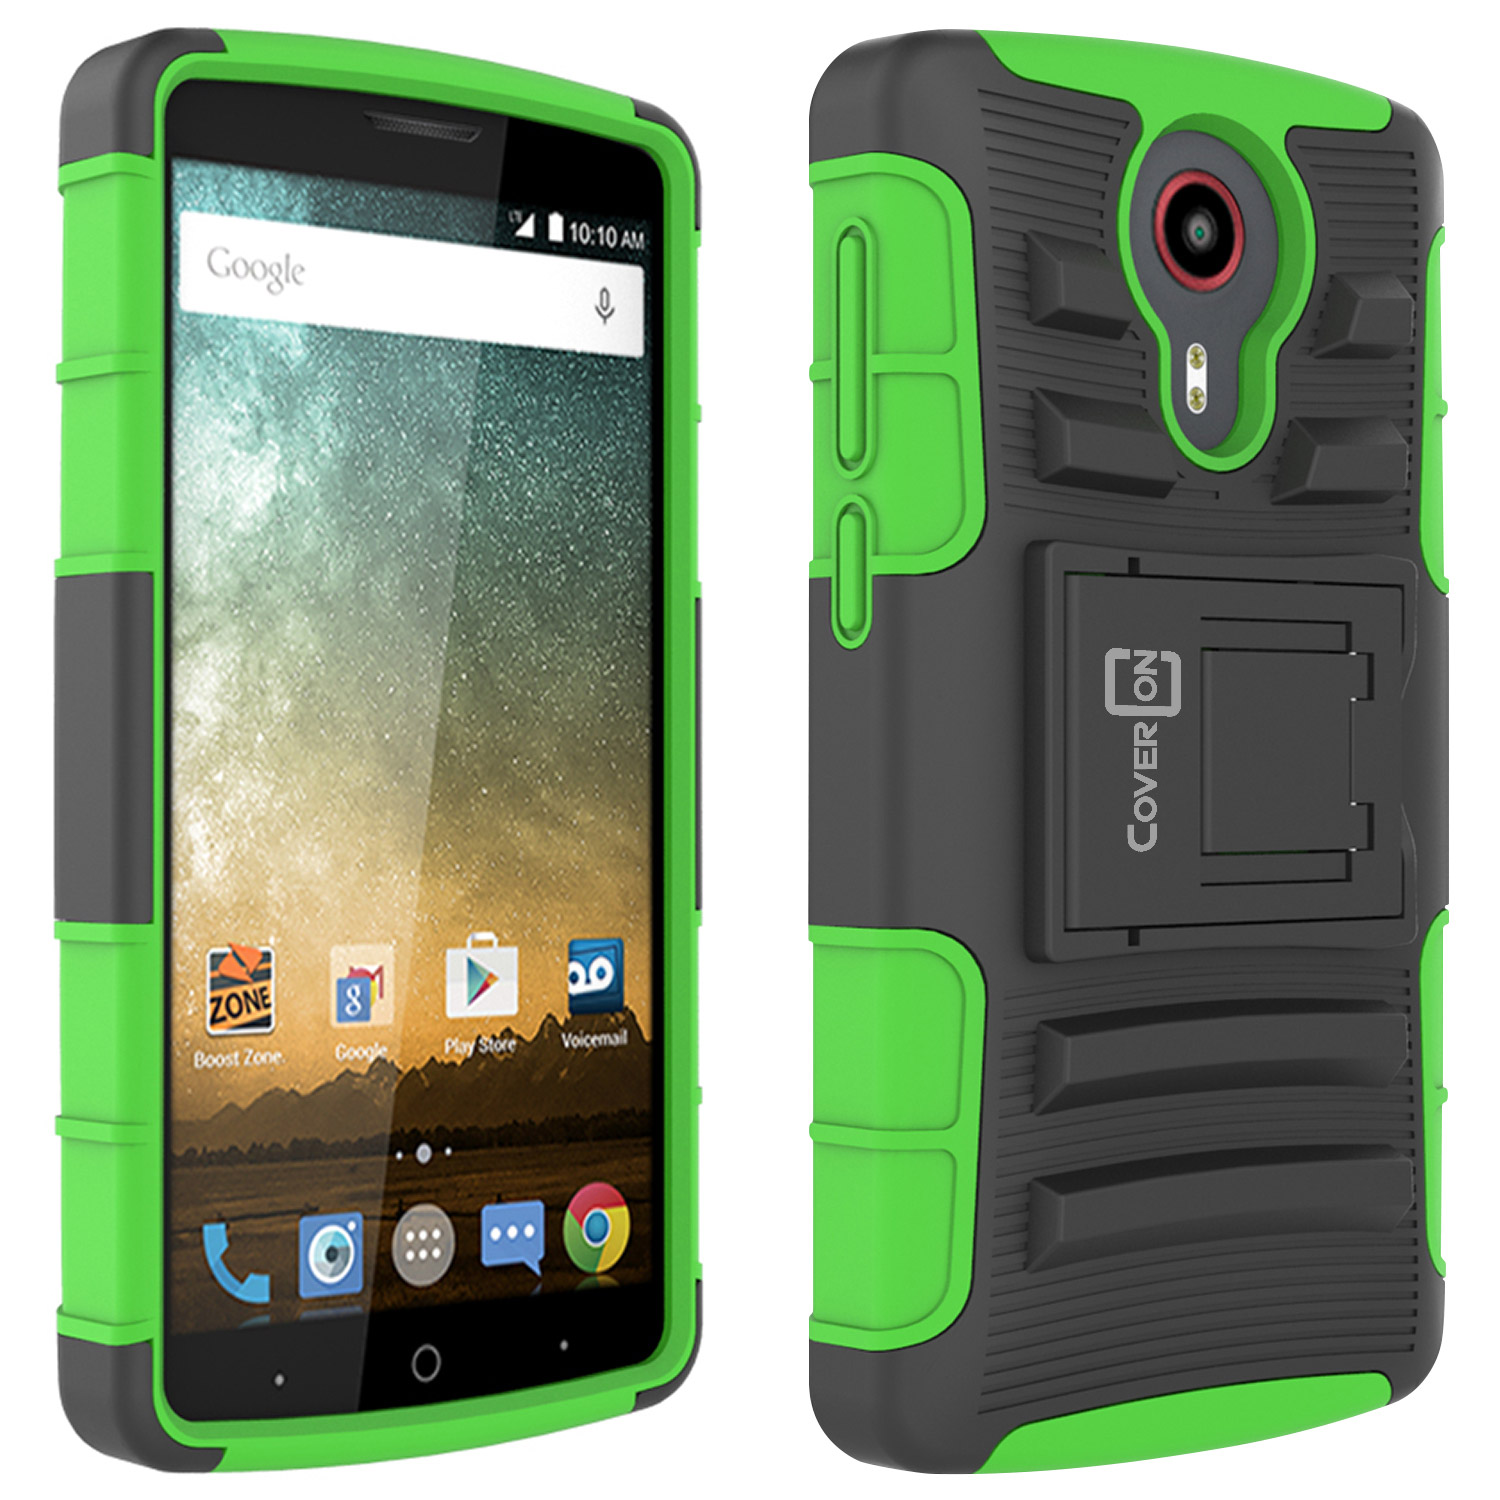 20+ Zte Phone From Qlink Wireless Pictures and Ideas on Meta Networks